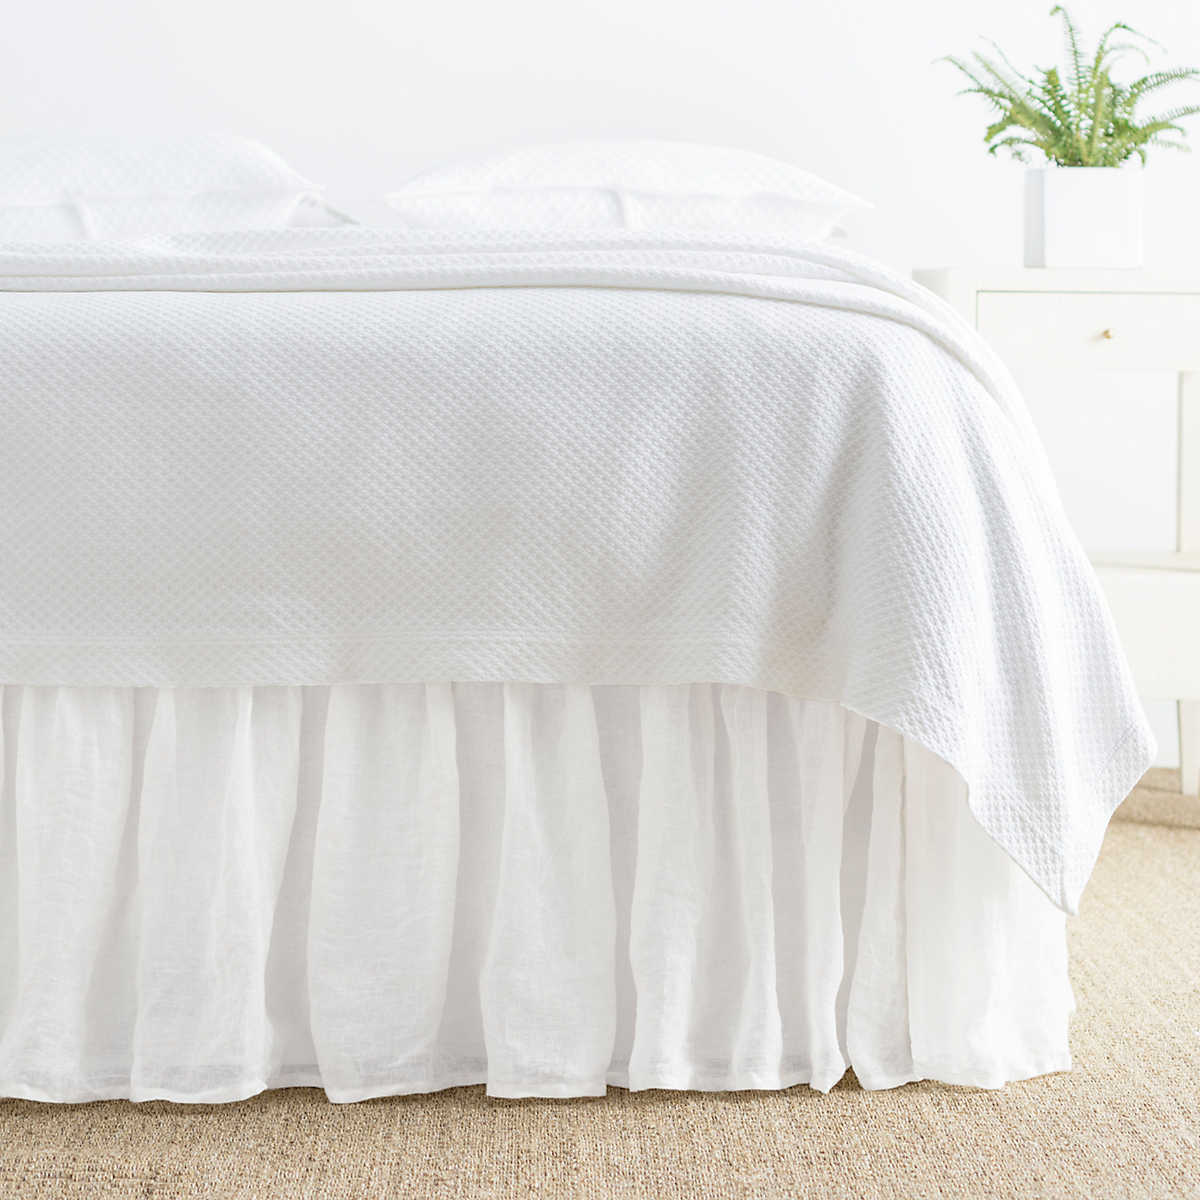 Savannah Linen Gauze White Bed Skirt Pine Cone Hill